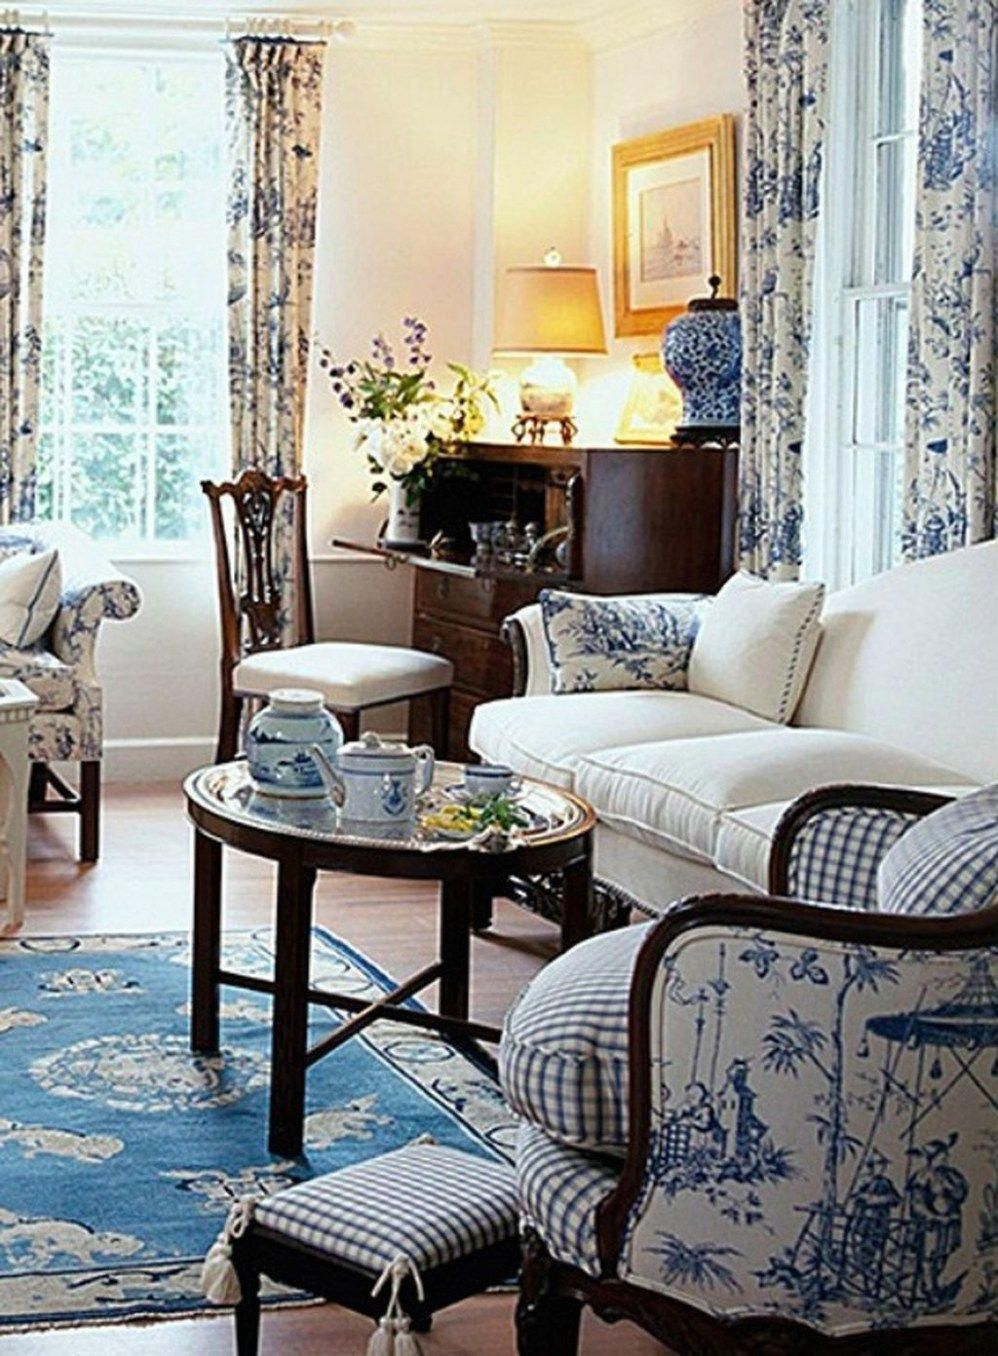 14+ Country living room ideas 2020 info